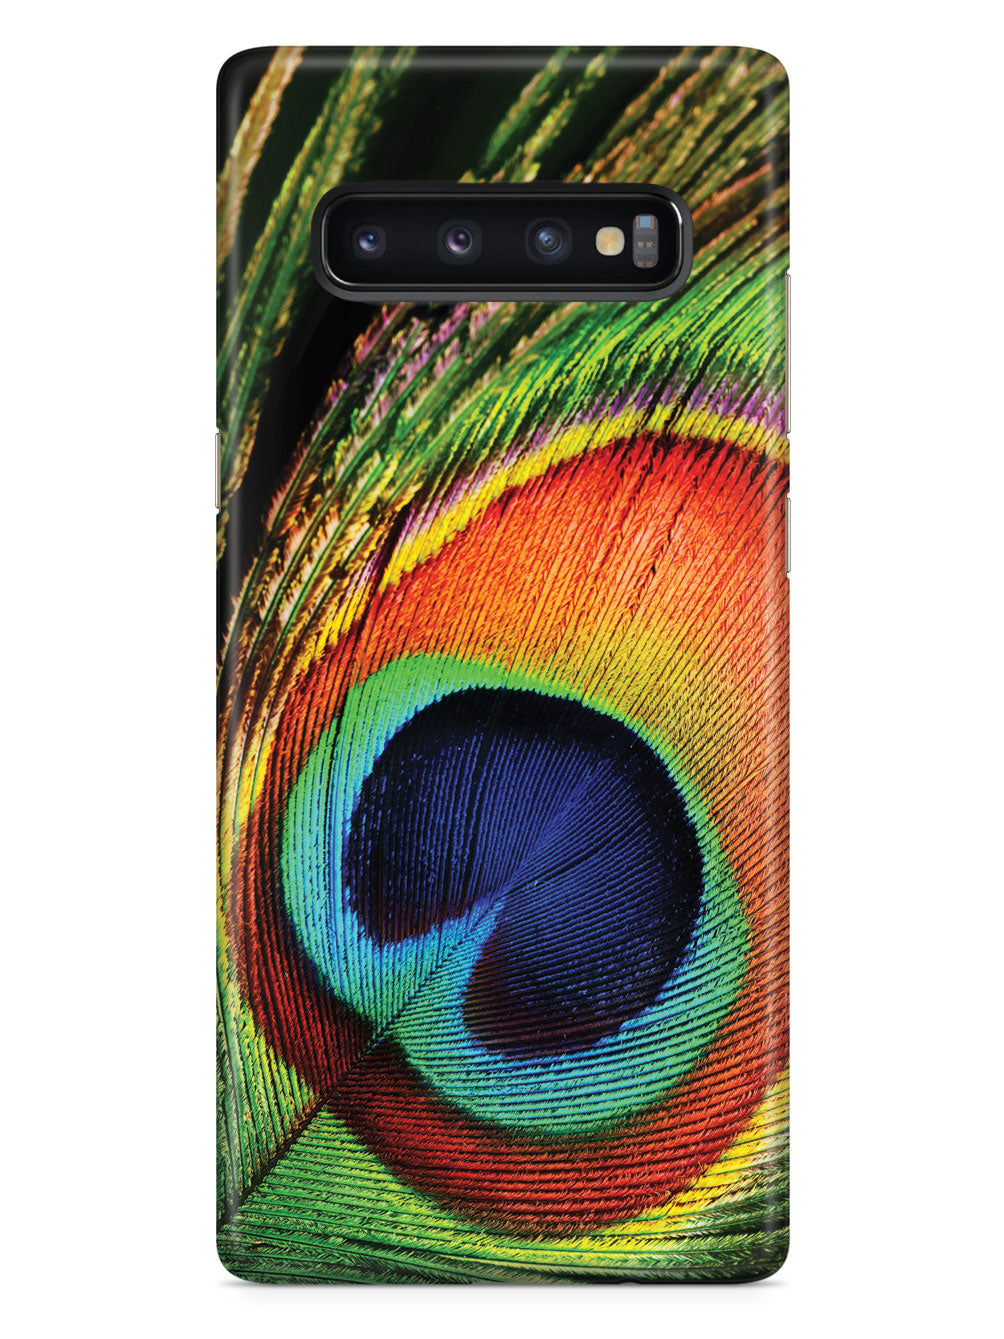 Textured Peacock Feather Case